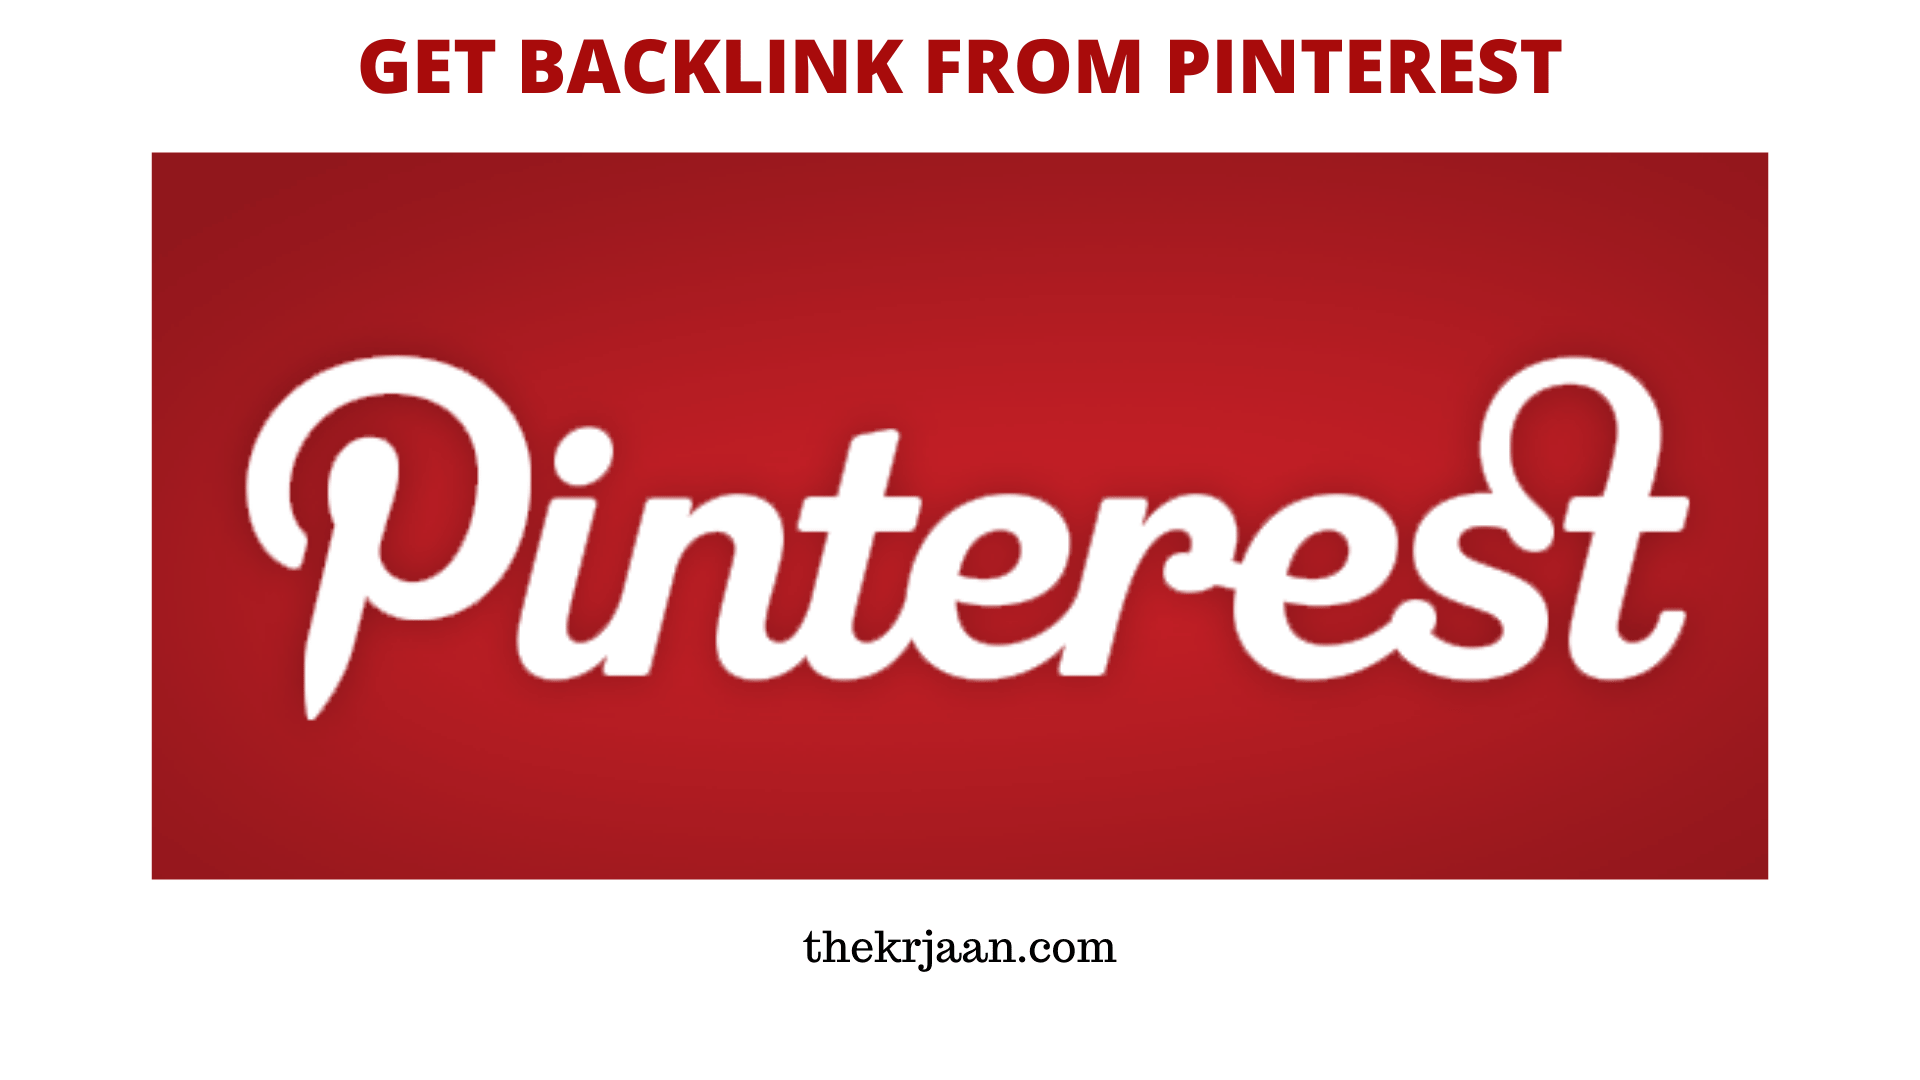 How To Get Backlinks | Get Bcklinks From Pinterest